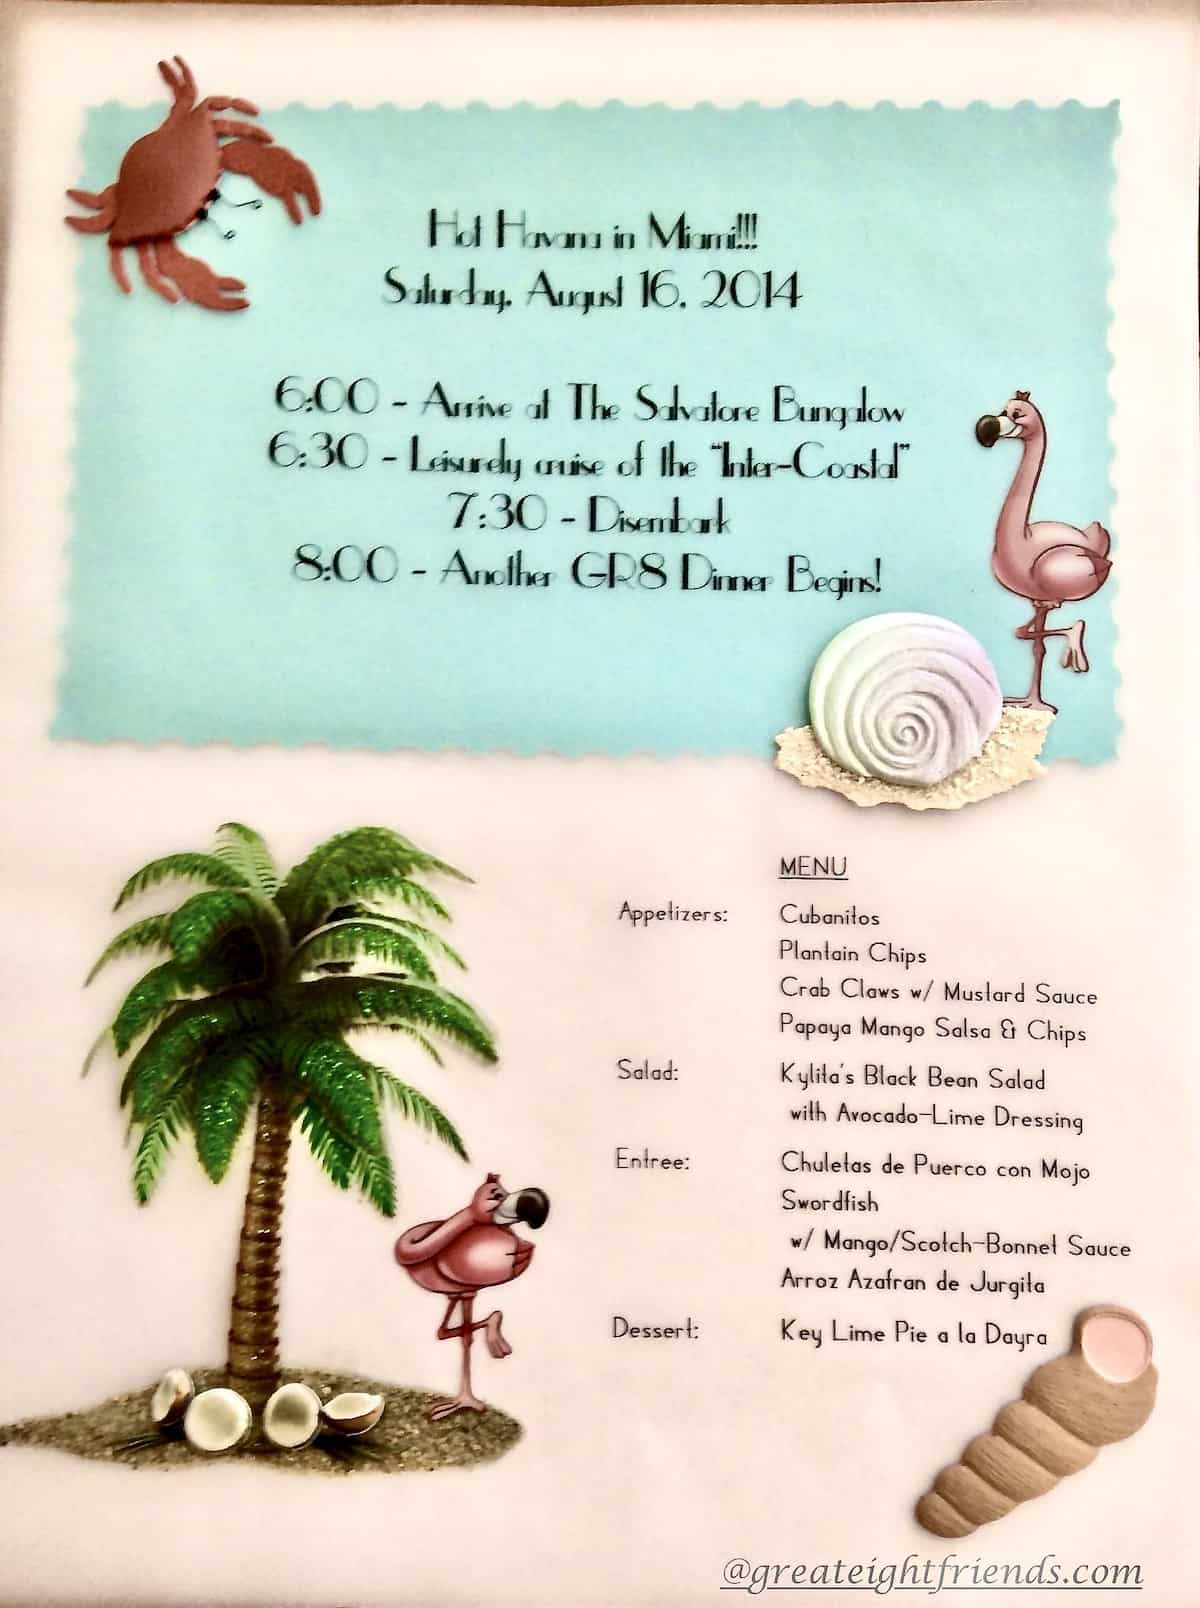 Invitation to a themed dinner party titled Hot Havana in Miami. The invite includes the day, time, and menu plus some tropical stickers.